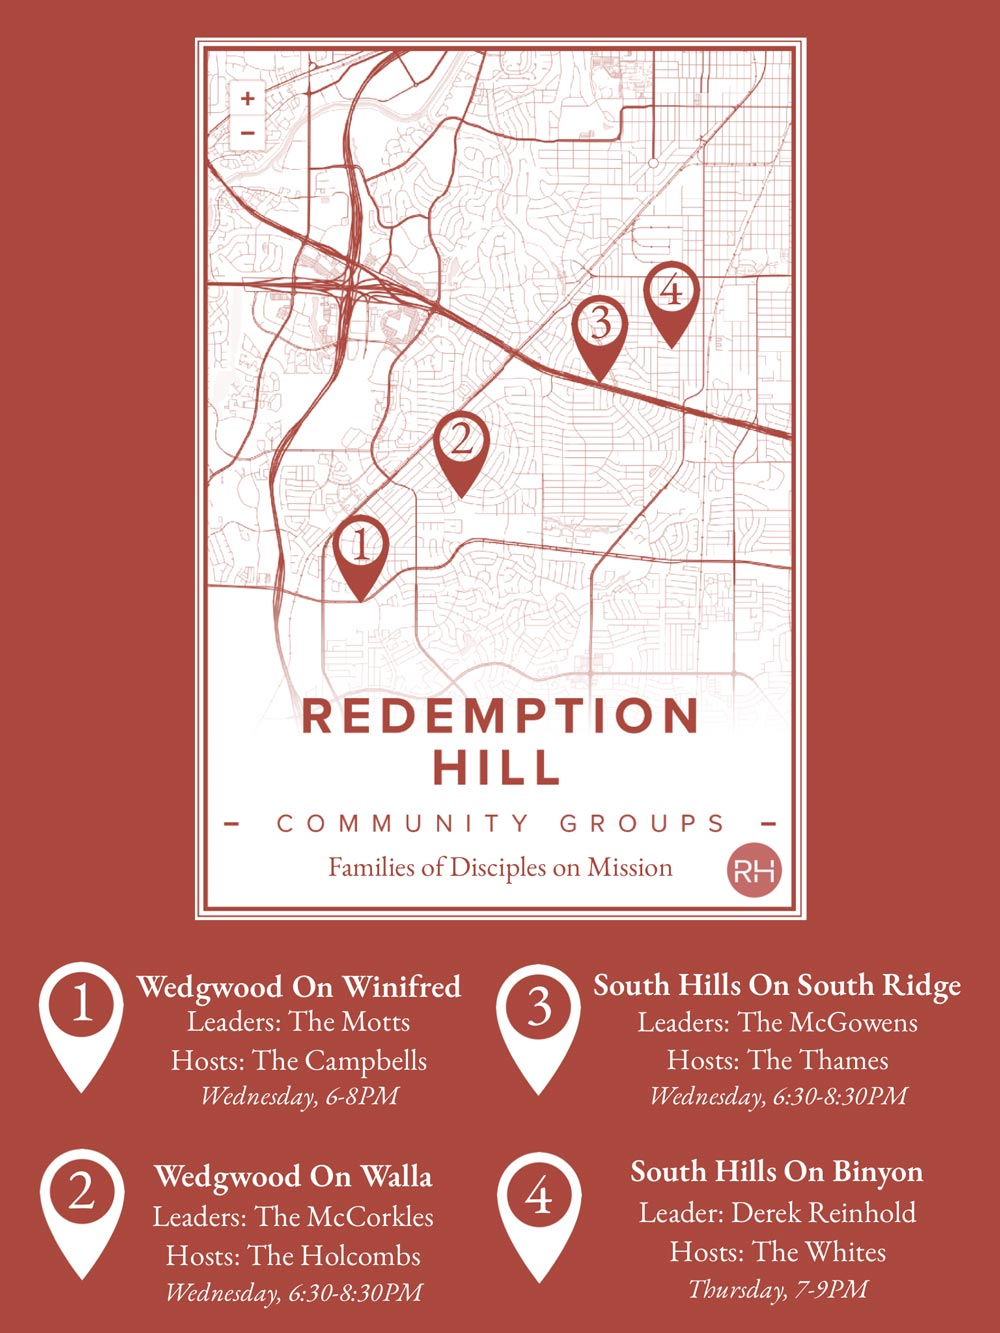 Redemption Hill Church Community Group Map